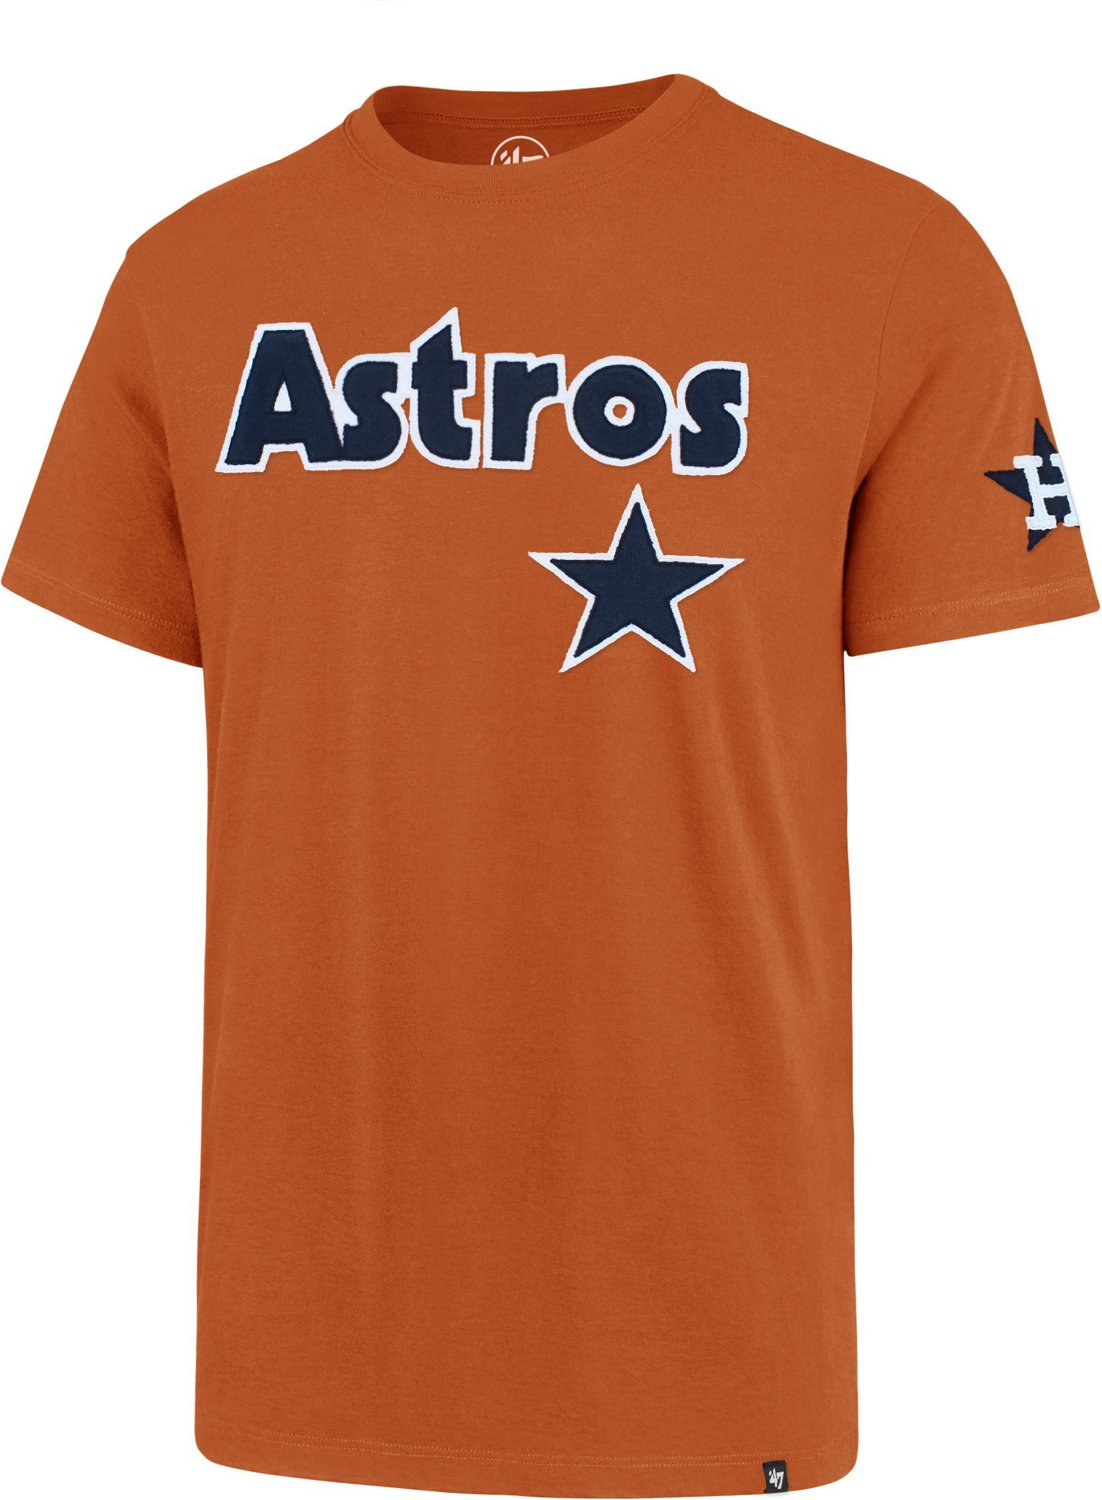 online store ff2a9 b42ad '47 Houston Astros Vintage Fieldhouse T-shirt